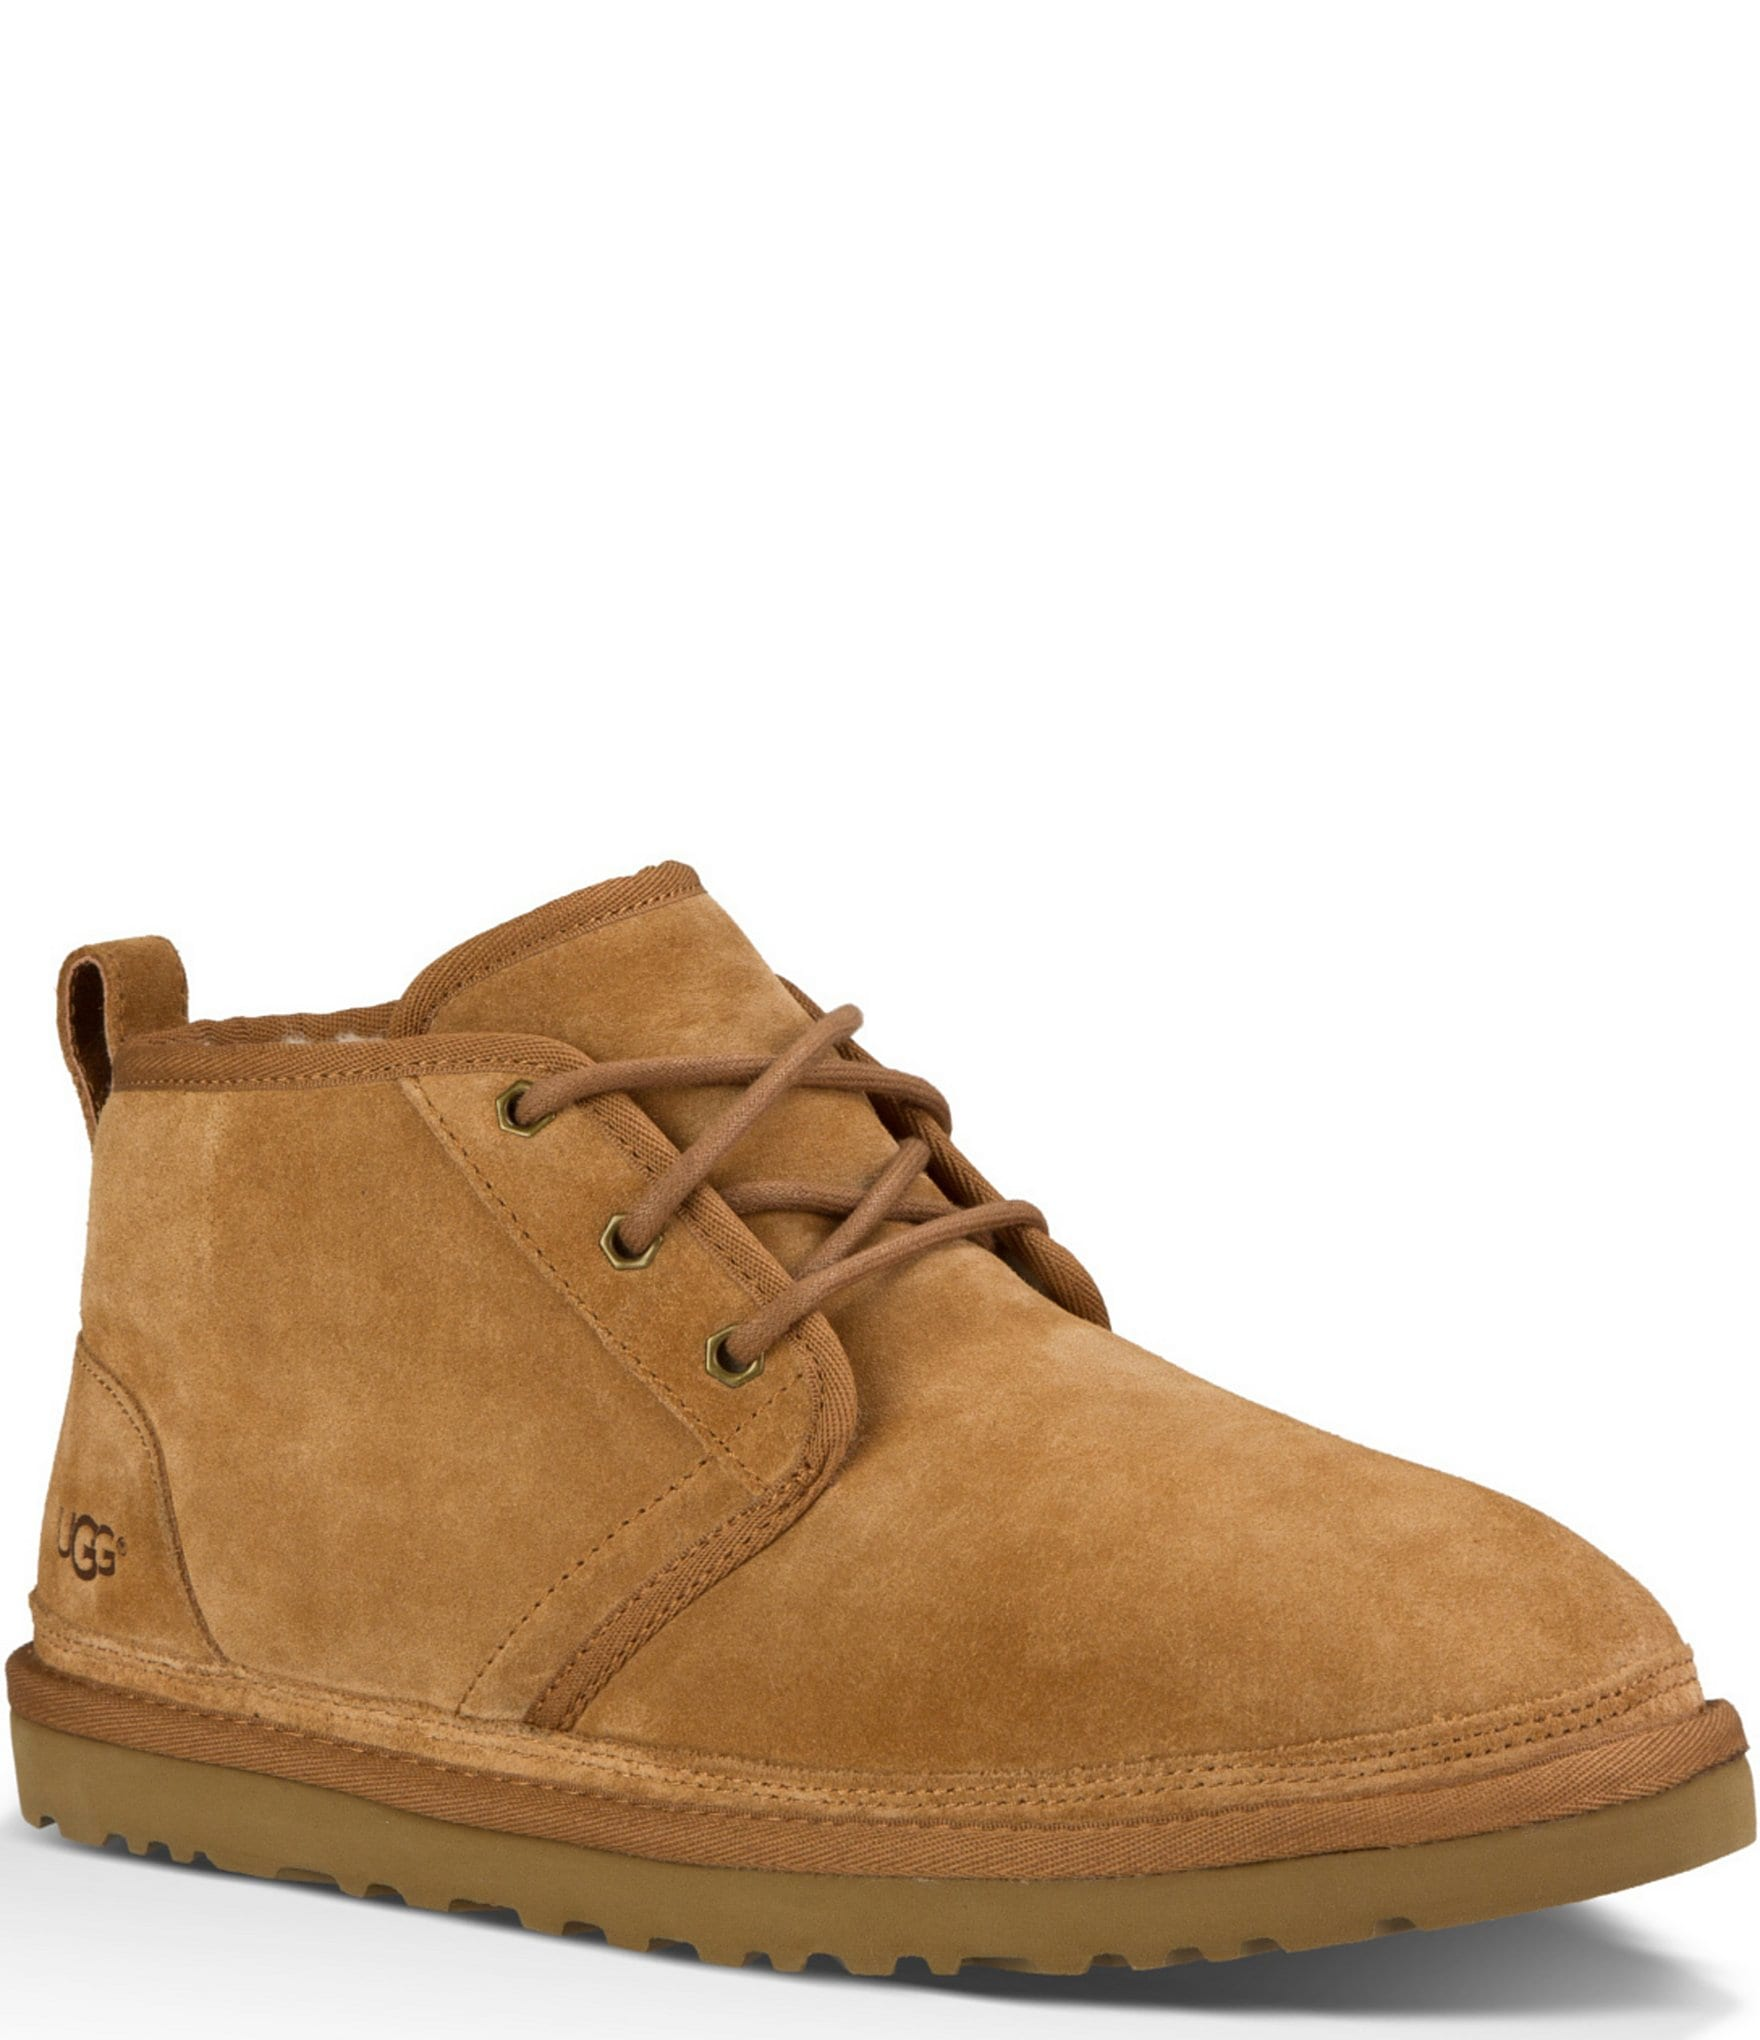 Ugg 174 Men S Neumel Classic Fur Lined Suede Lace Up Chukka